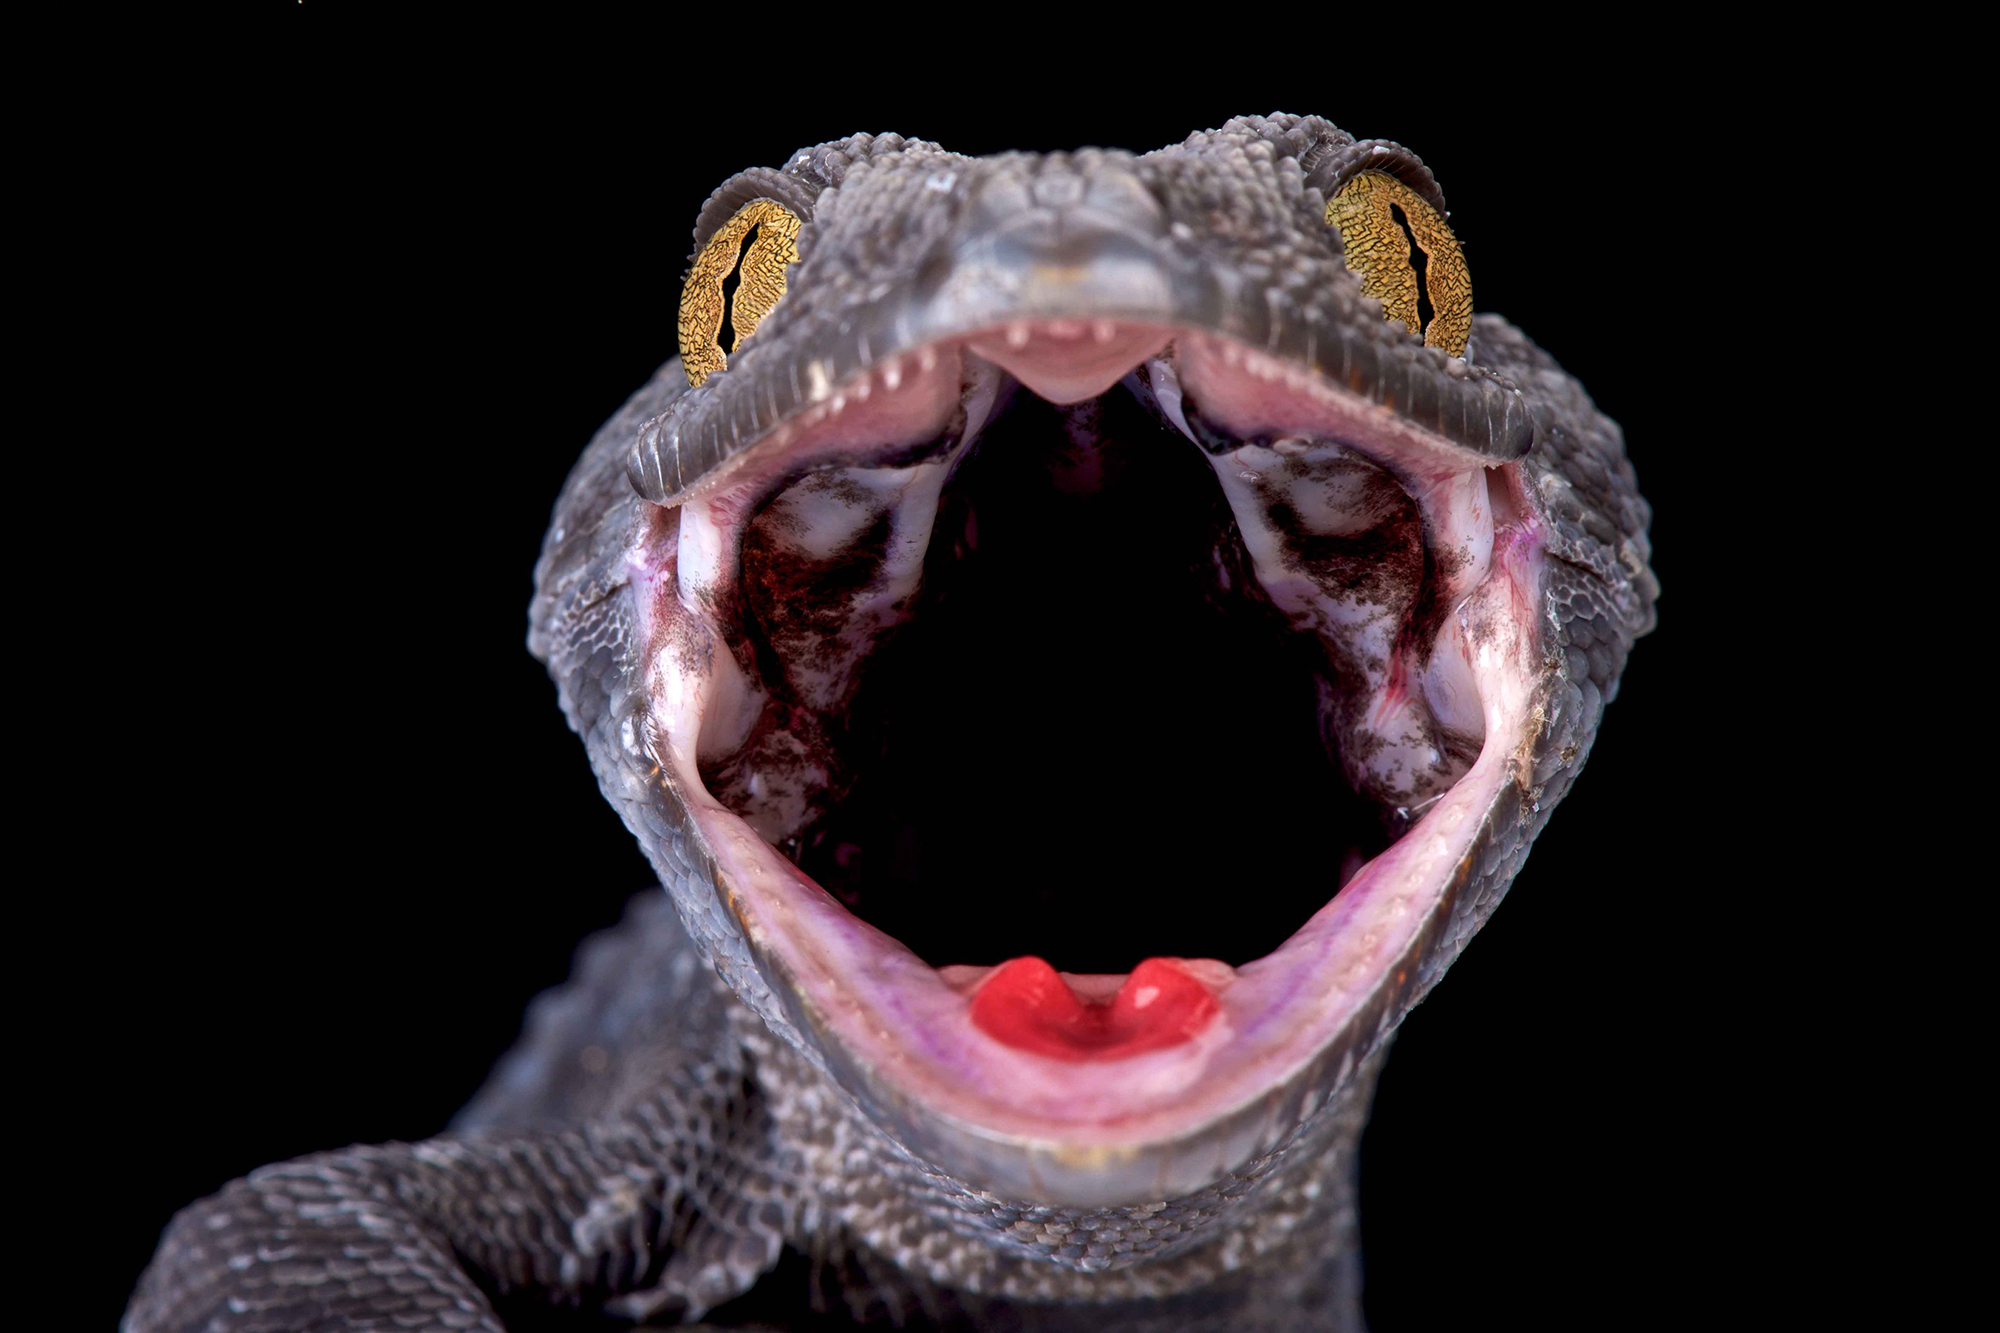 Dazzling Reptile Photographs From Stunning New Book